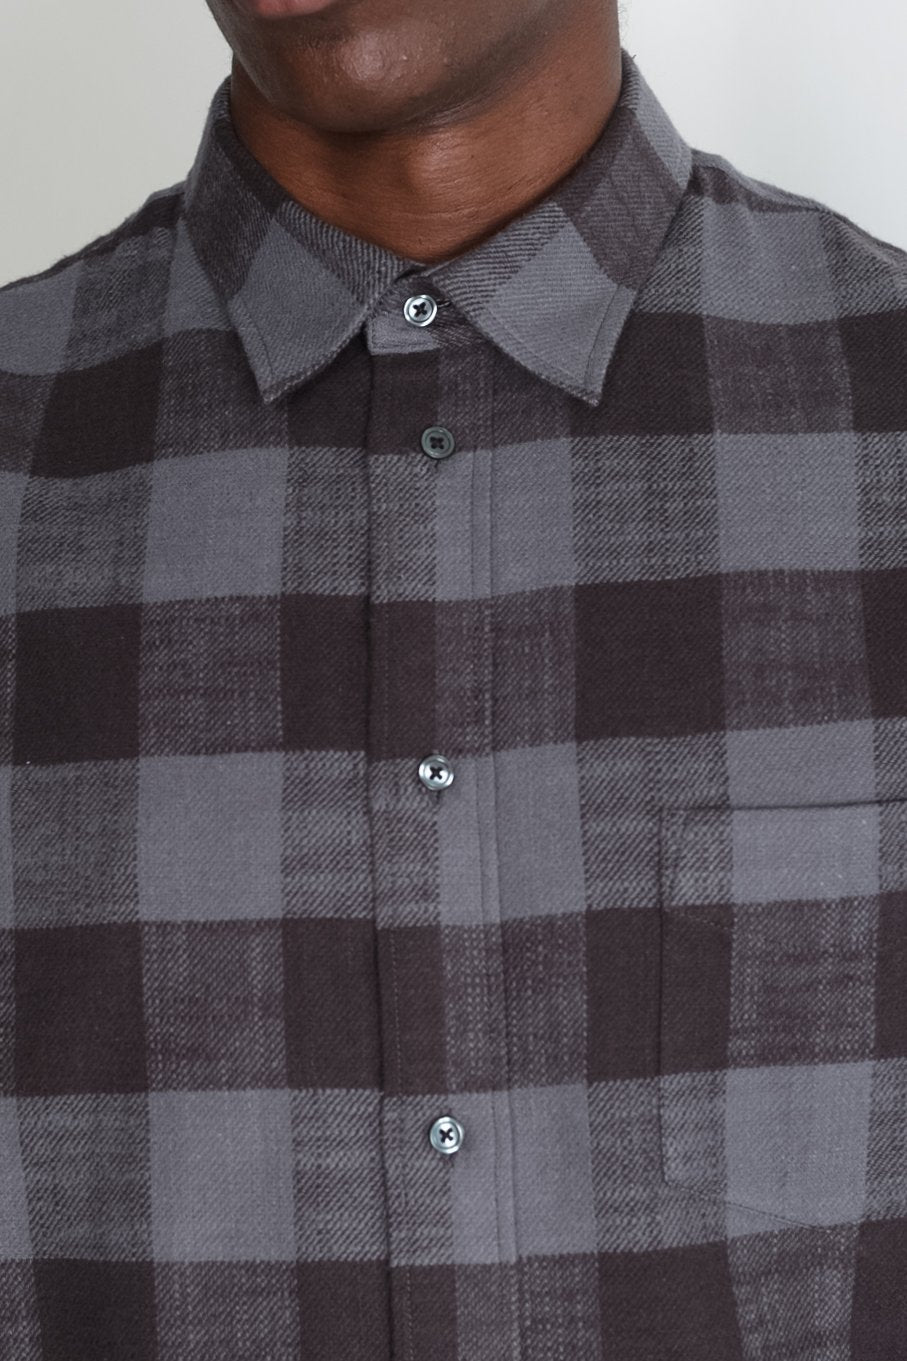 Japanese Buffalo Plaid in Grey and Black 05